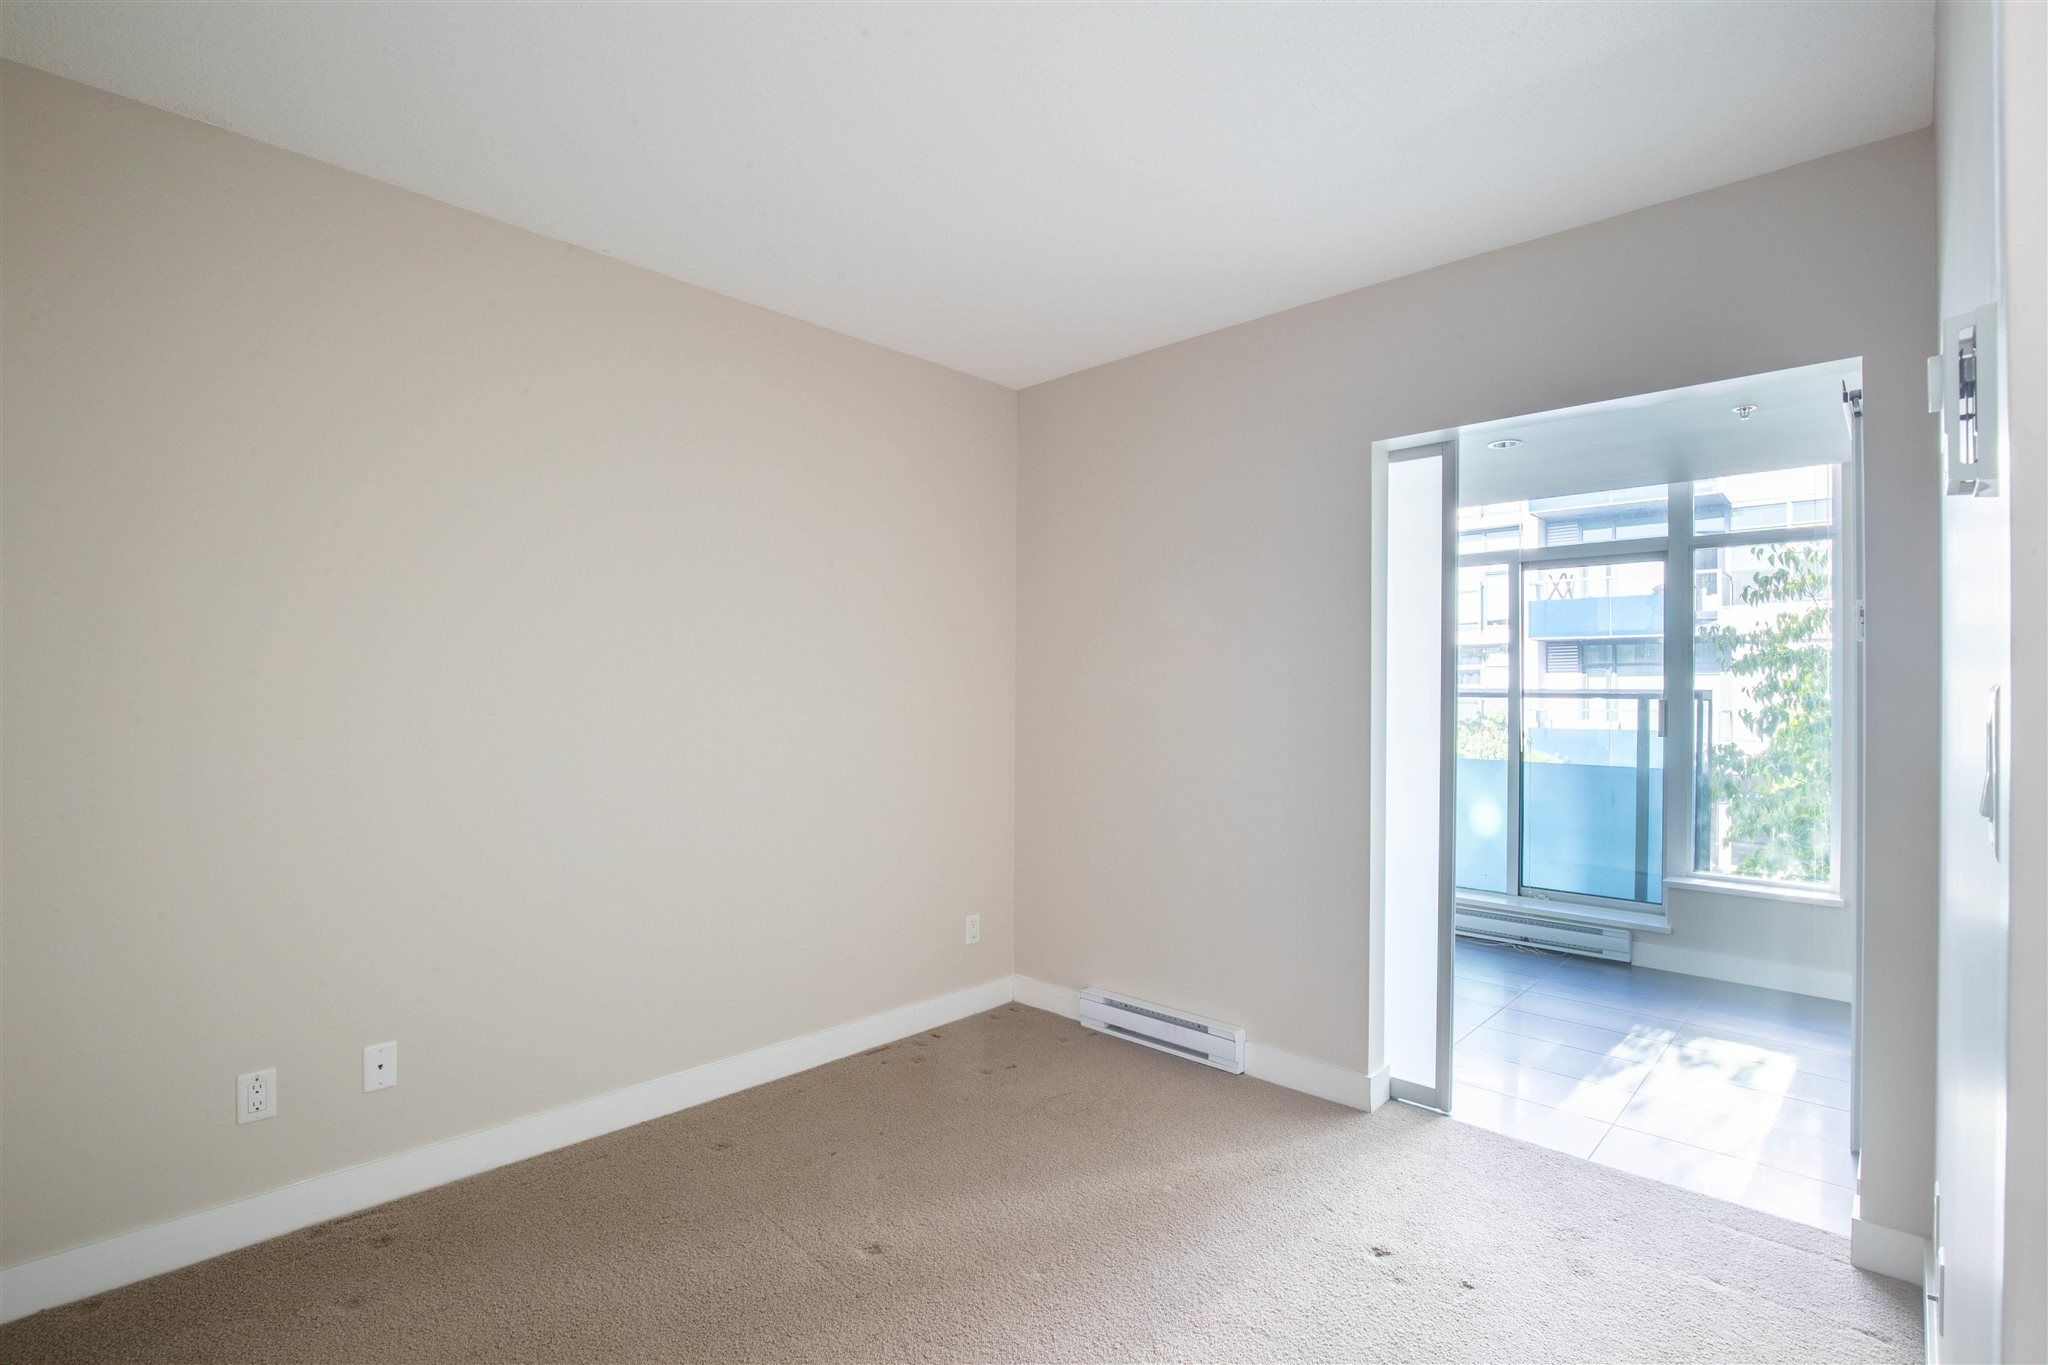 """Photo 6: Photos: 235 1777 W 7TH Avenue in Vancouver: Fairview VW Condo for sale in """"KITS 360"""" (Vancouver West)  : MLS®# R2607032"""